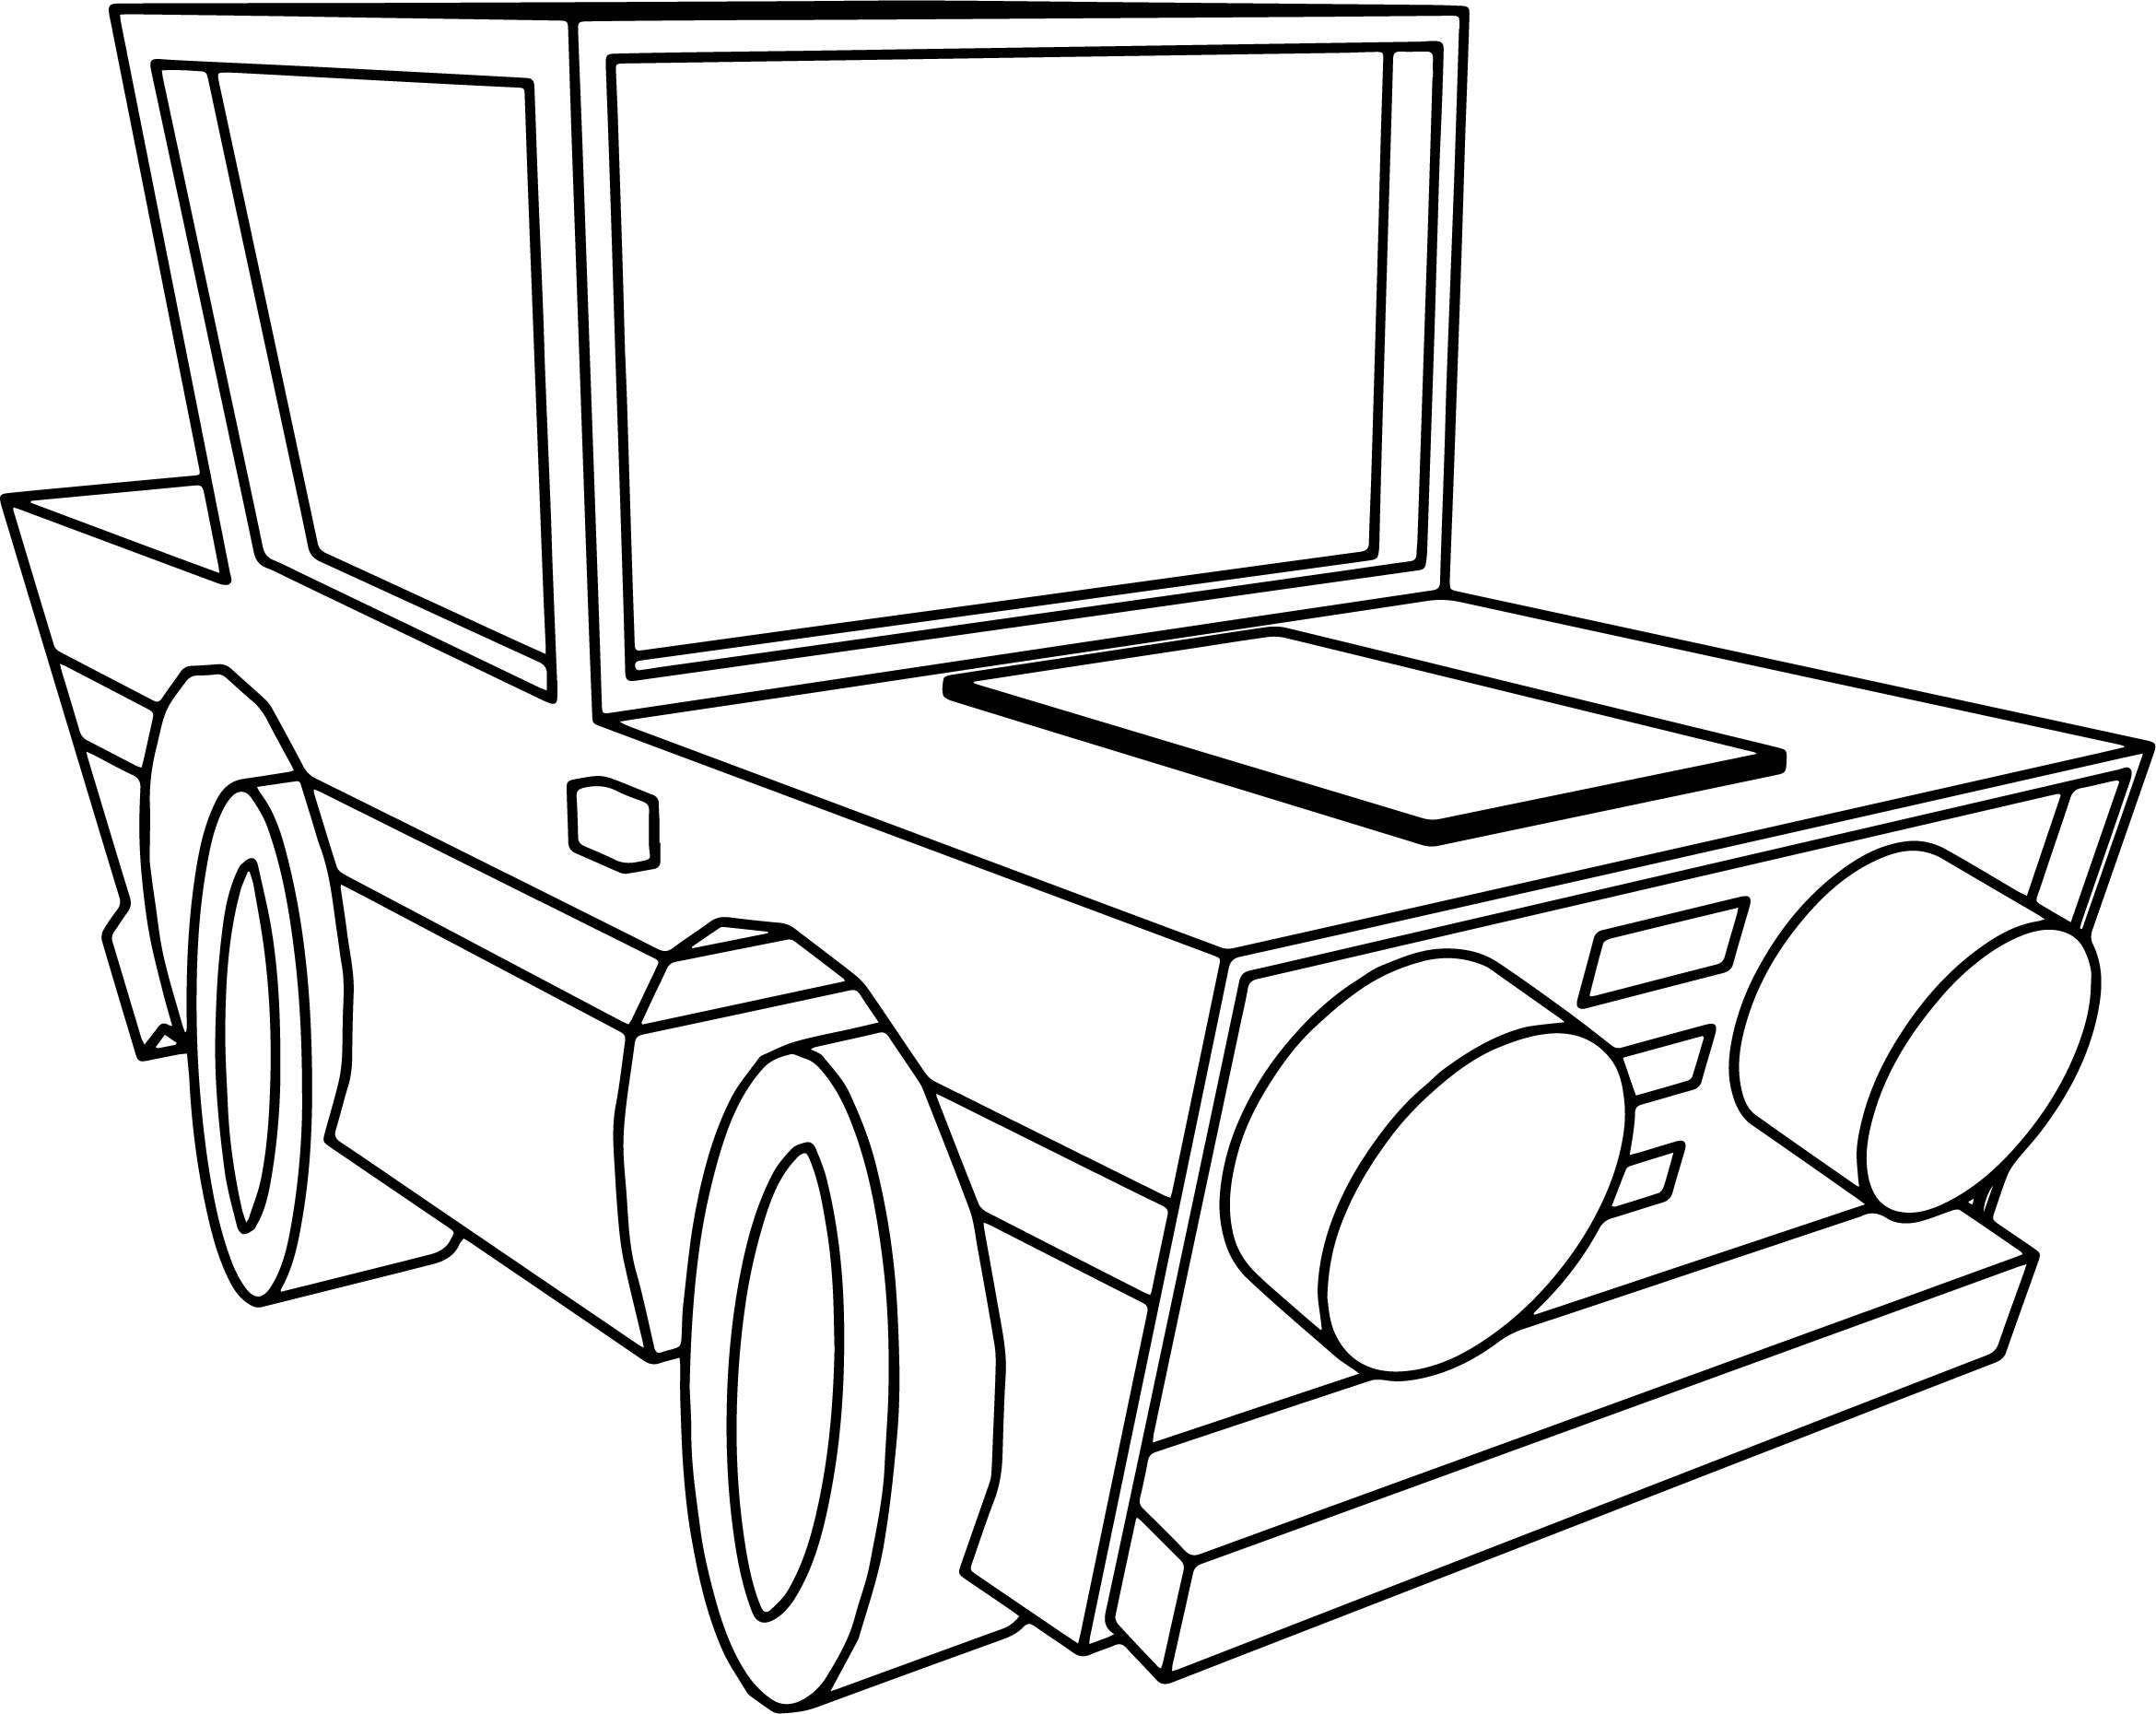 Basic Car Coloring Pages : Basic cartoon car bold coloring pages wecoloringpage